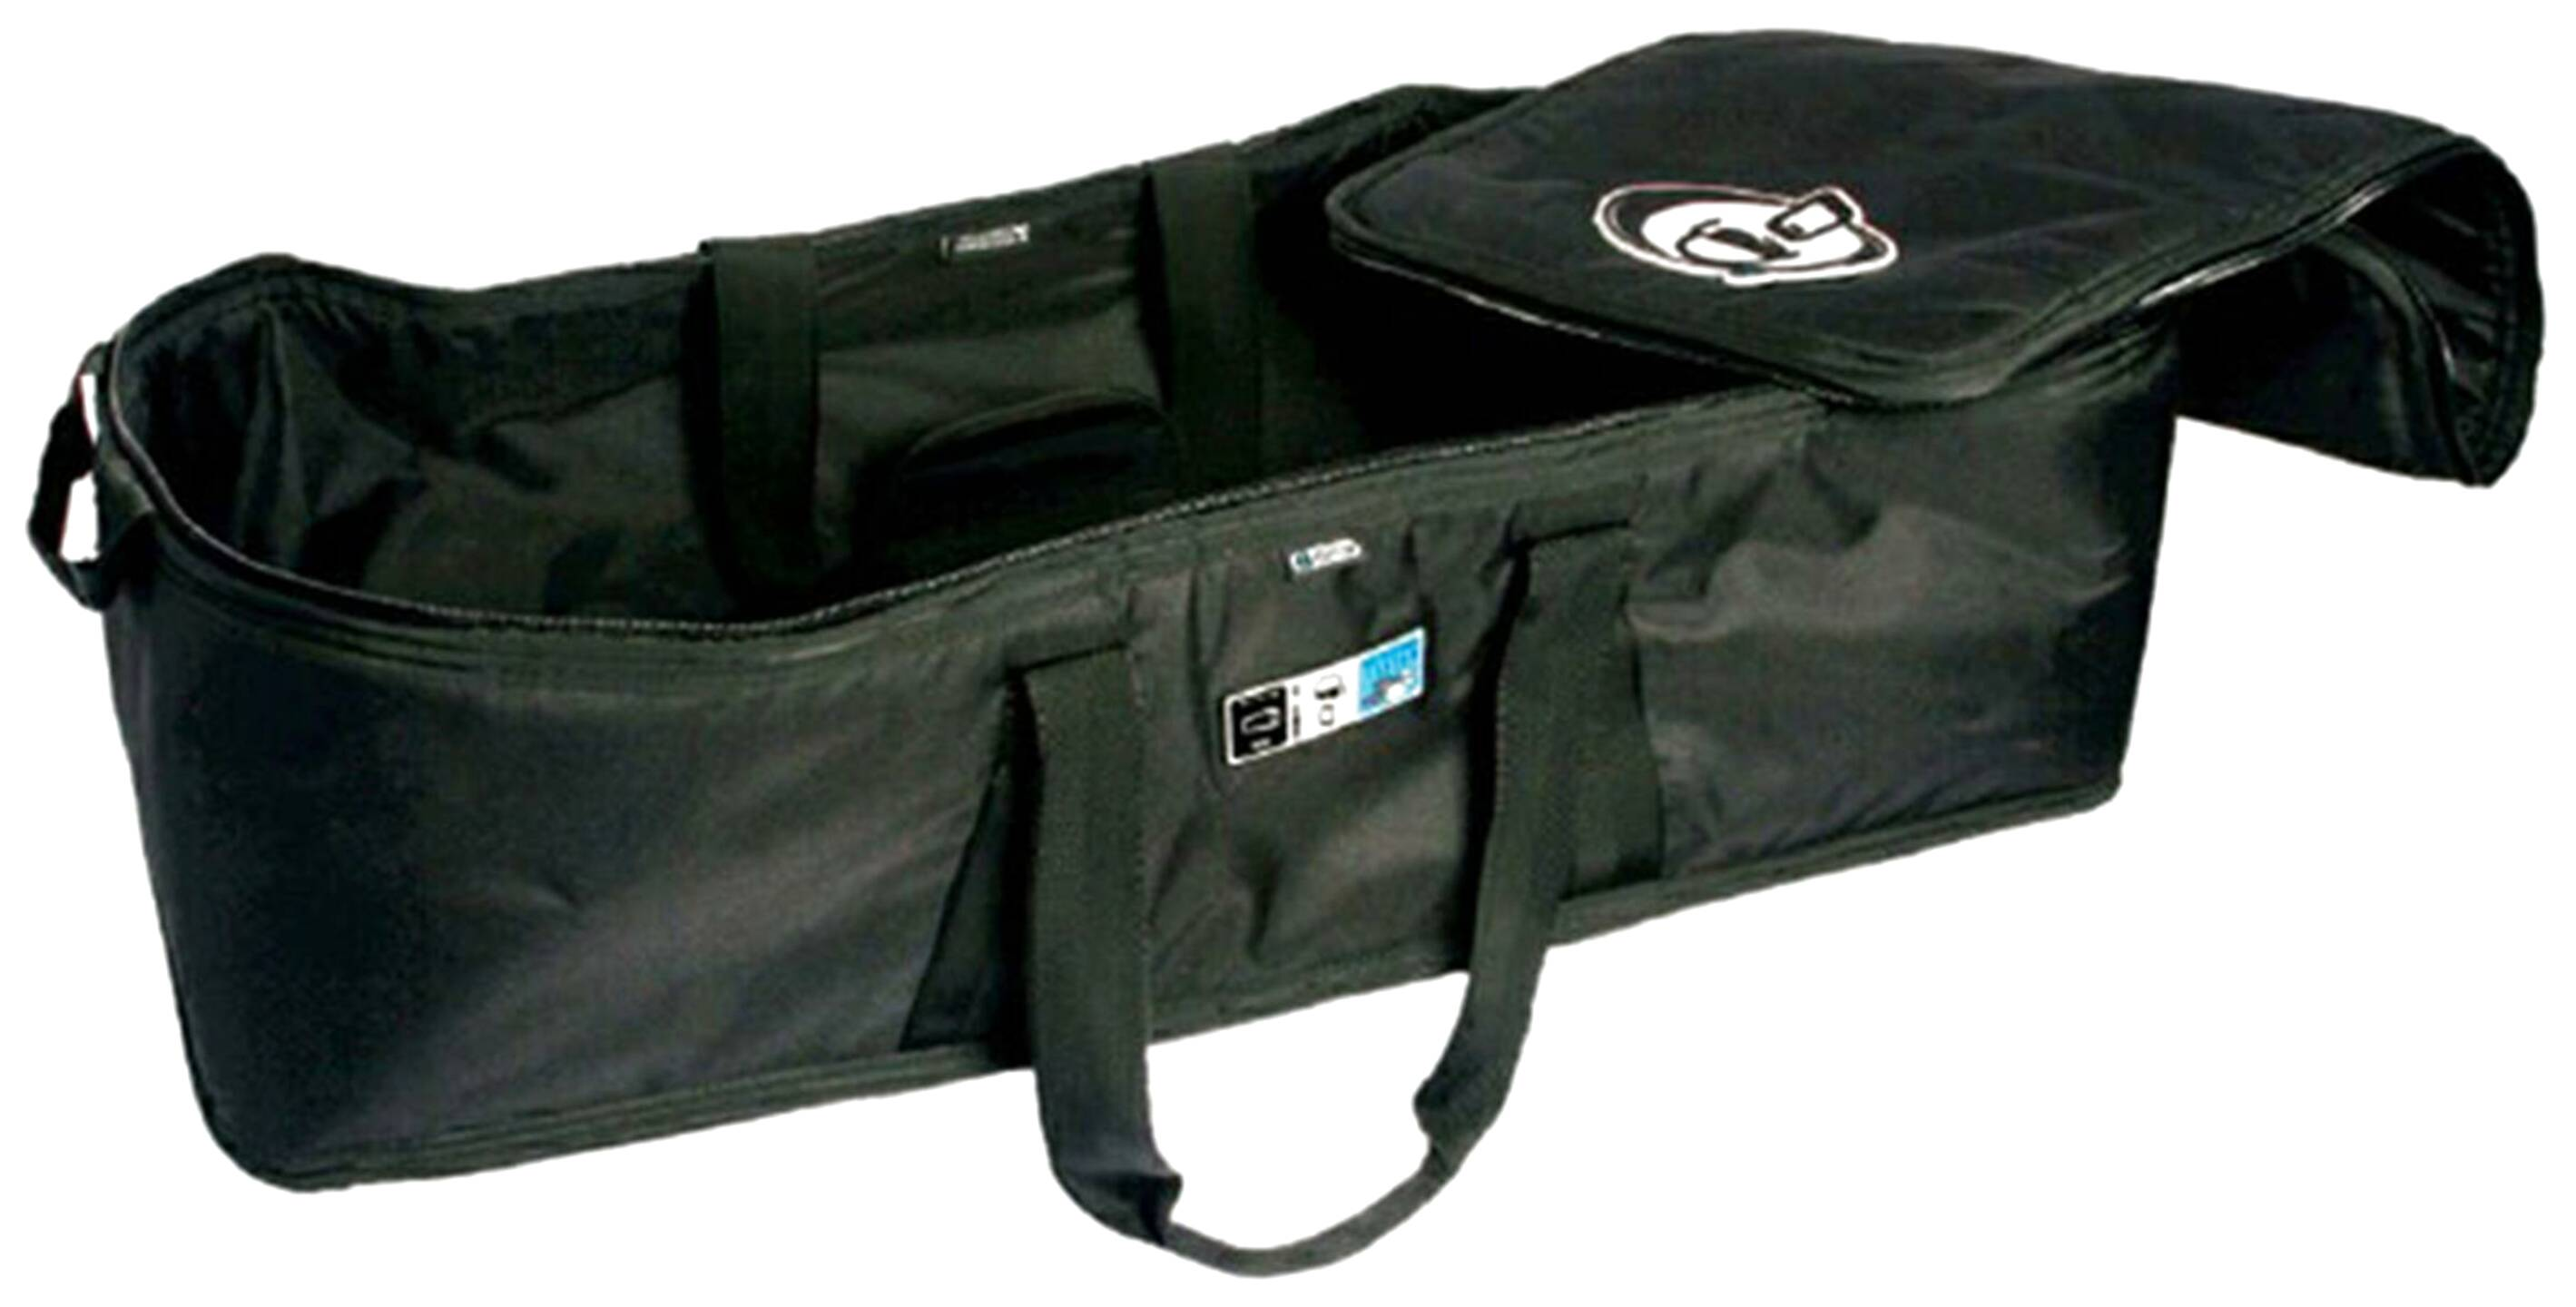 Protection Racket 5032 Hardware Case 30x11x7in